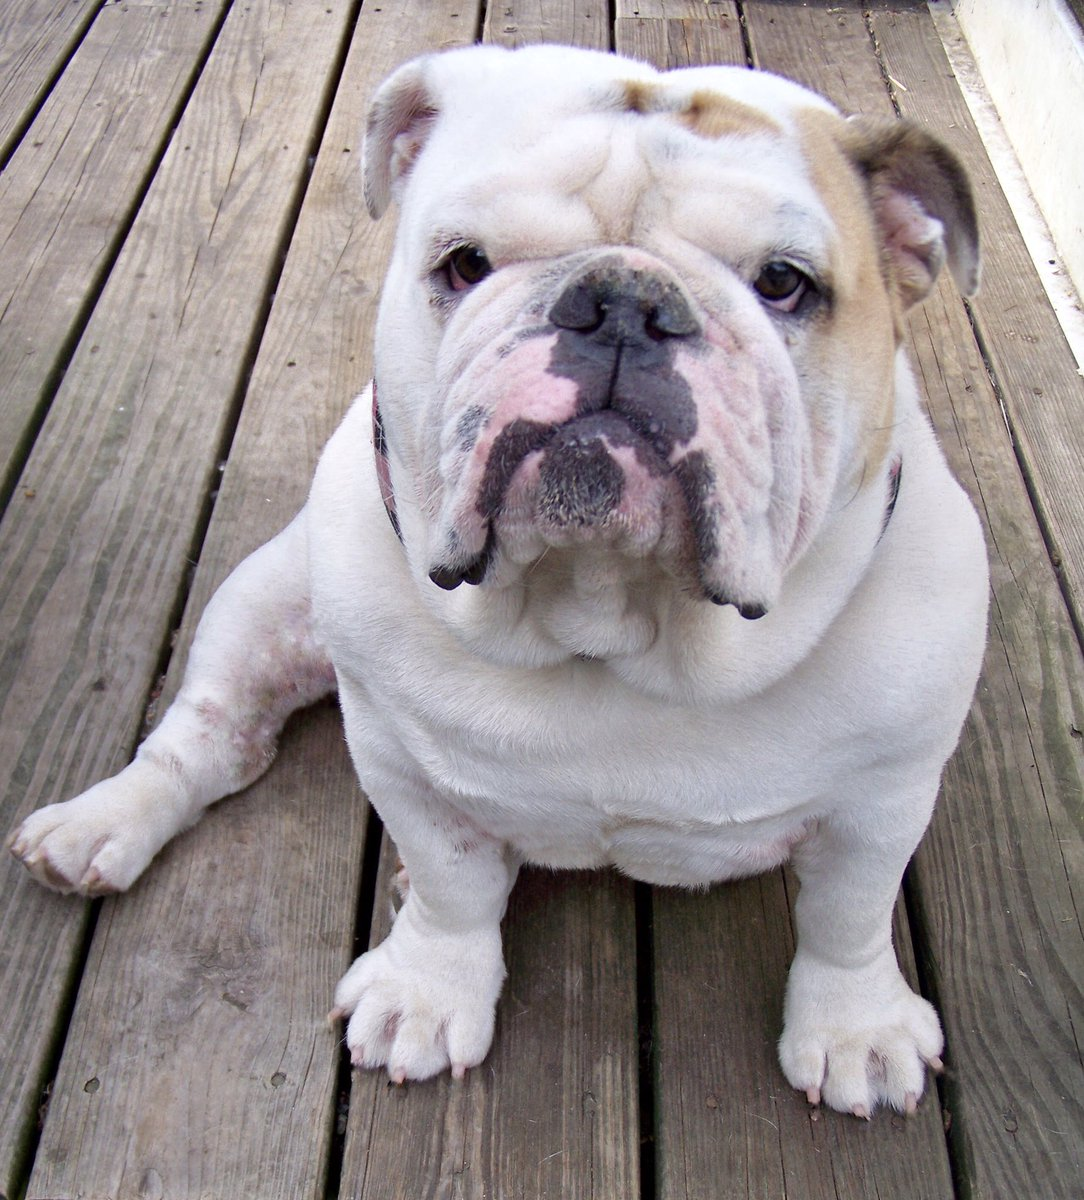 Gertie the Bulldog... Donut in one Paw... Confidence in the Other... As a Matter of Fact... She was The Queen of All Bulldogs Love, Gertie's Family 👑🍩🐾🐶🐾 #gertiethebulldog #gertiegotdonuts #queenofallbulldogs #SaturdayThoughts #bulldog #dogs #Dog